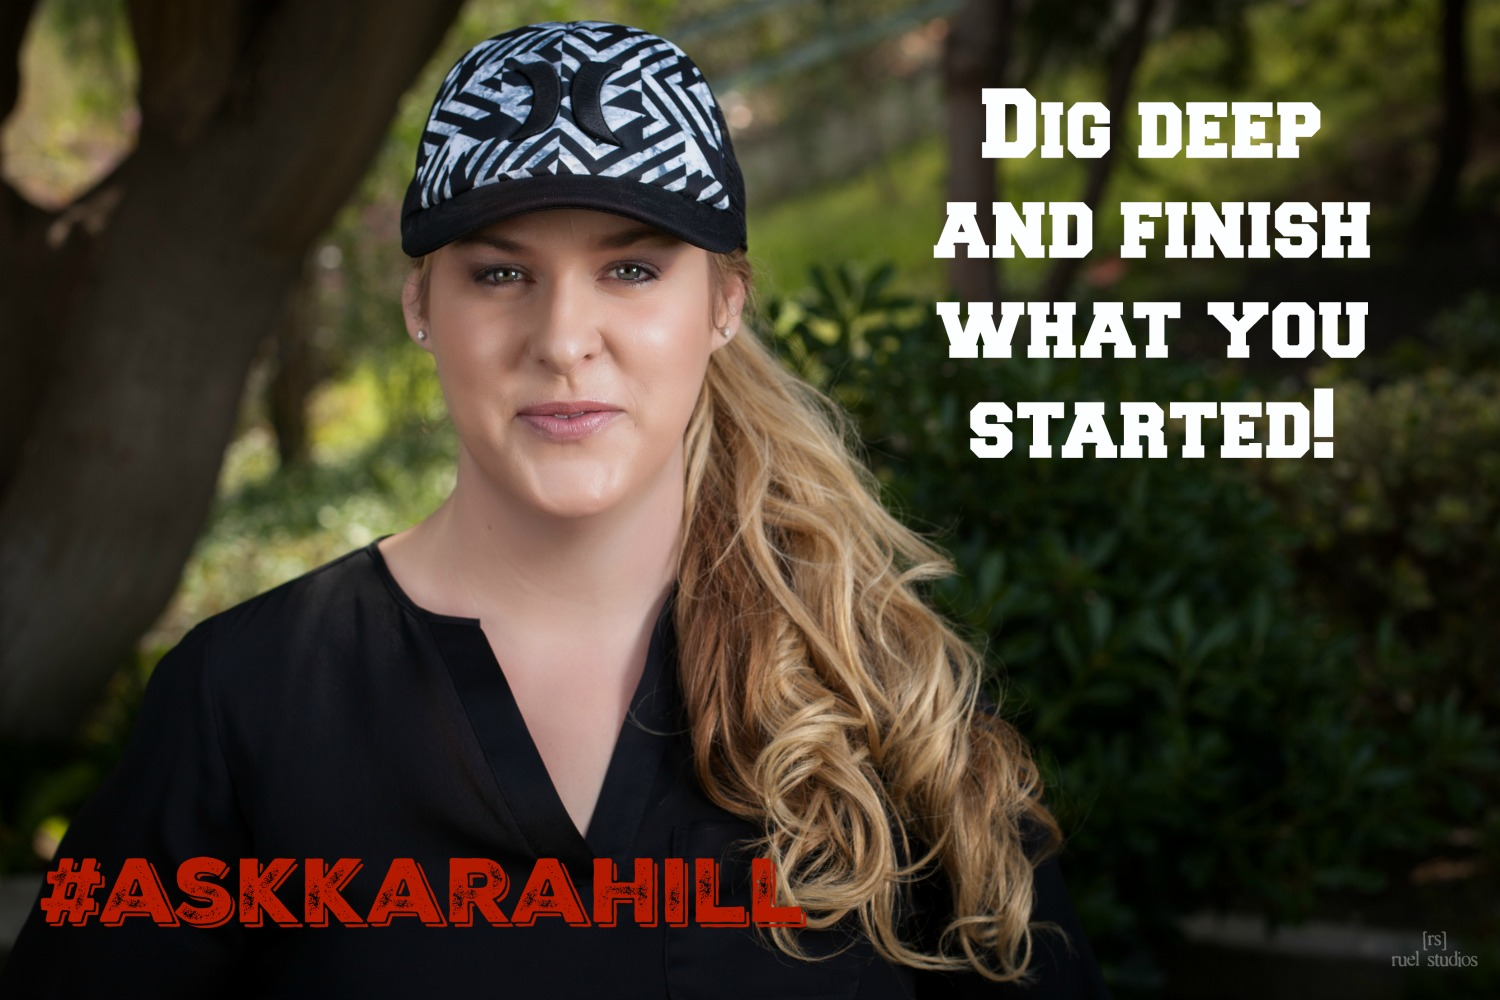 Dig deep and finish what you started! kara hill My Recruiting solutions